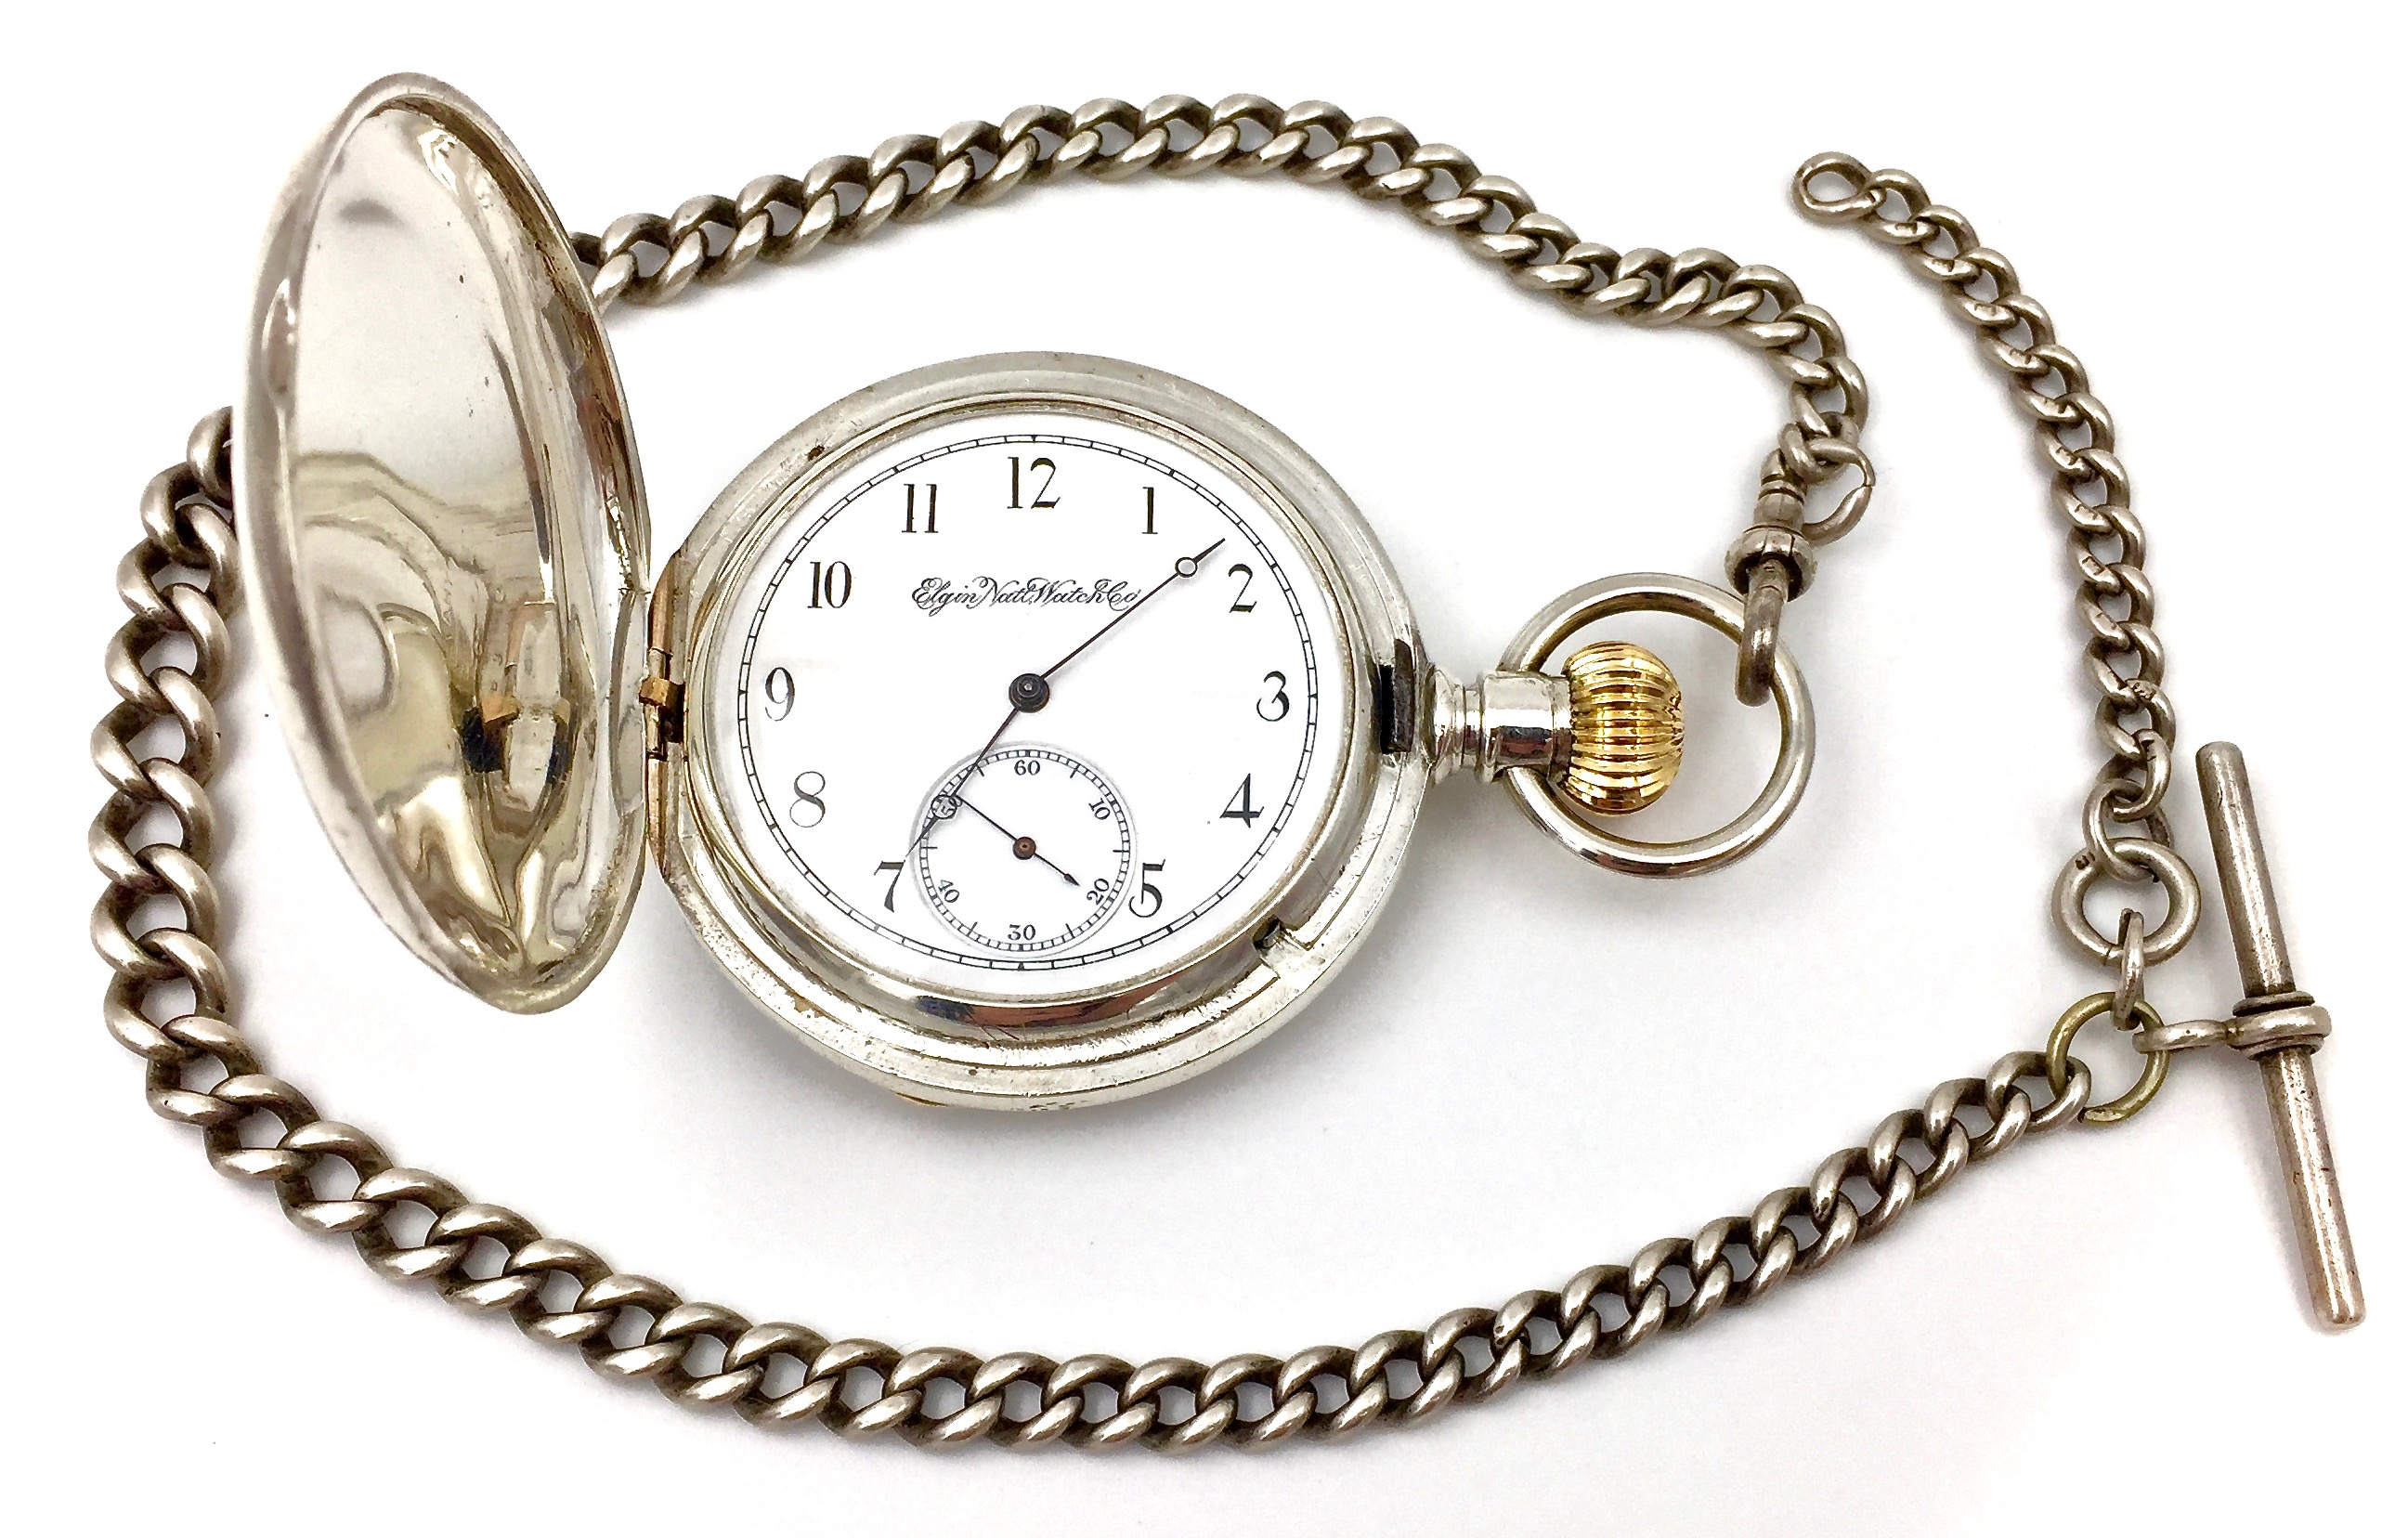 7261114df Home / Accessories / Pocket Watch Chains / Sterling Silver T-Bar Pocket  Watch Chain, c.1908